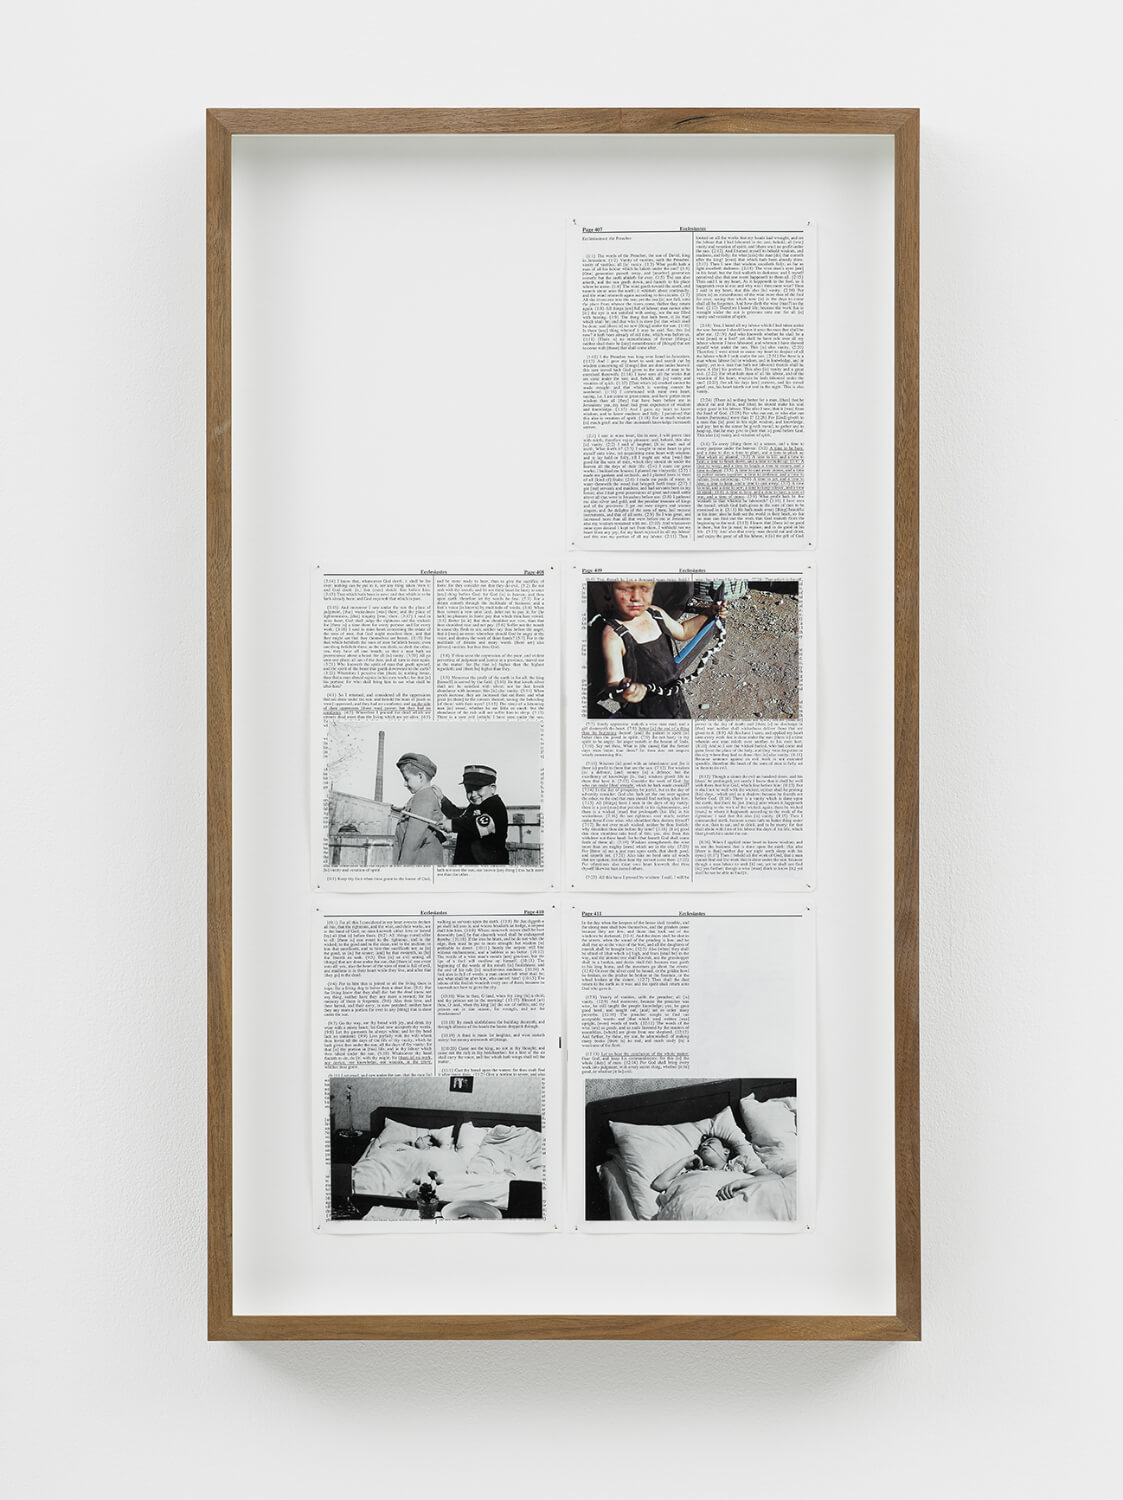 Ecclesiastes, Divine Violence, 2013, King James Bible, Hahnemühle print, brass pins, 425mm x 315mm, Image courtesy of Lisson Gallery, London